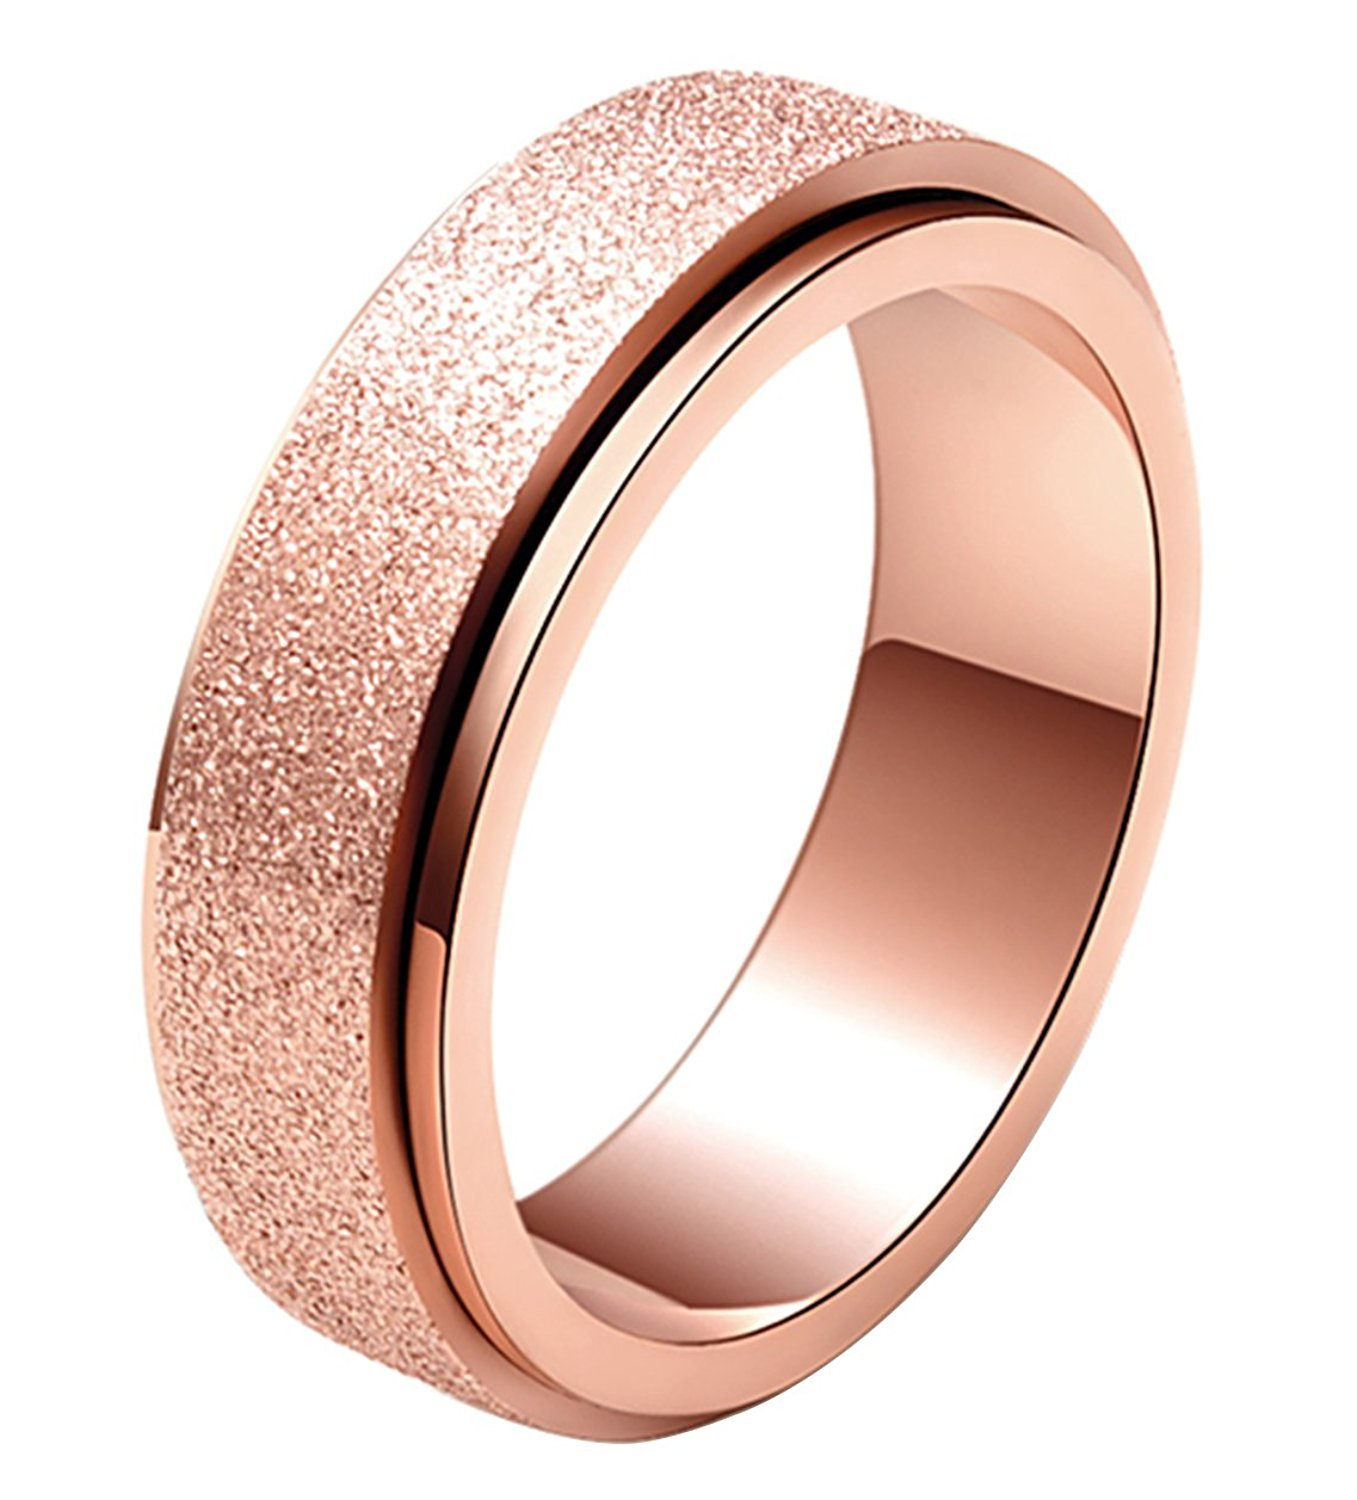 ALEXTINA Women's 6MM Stainless Steel Ring Spinner Band Sand Blast Finish Rose Gold Size 7